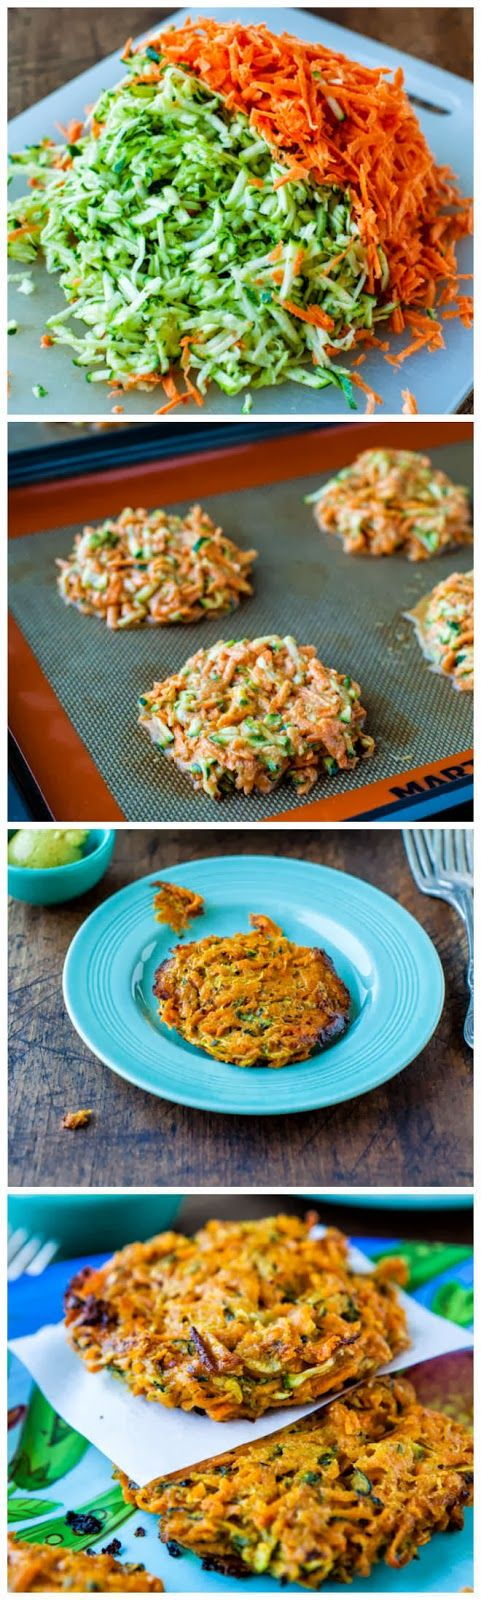 Baked Chipotle Sweet Potato And Zucchini Fritters Averie Cooks